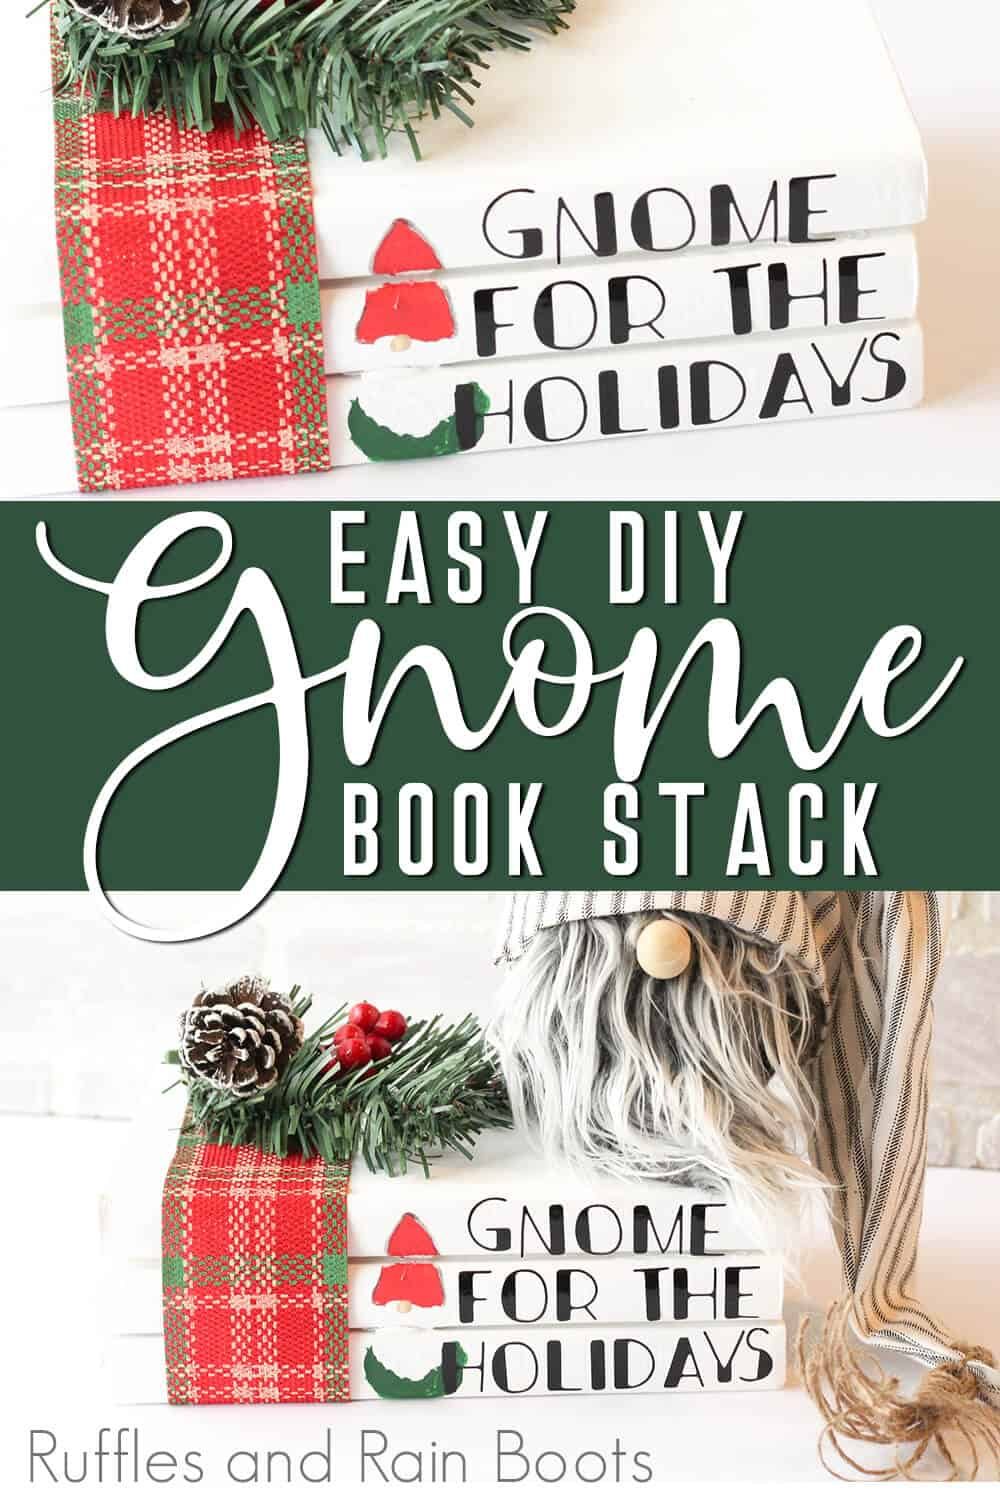 photo collage of farmhouse christmas gnome books stack with text which reads easy diy gnome bookstack